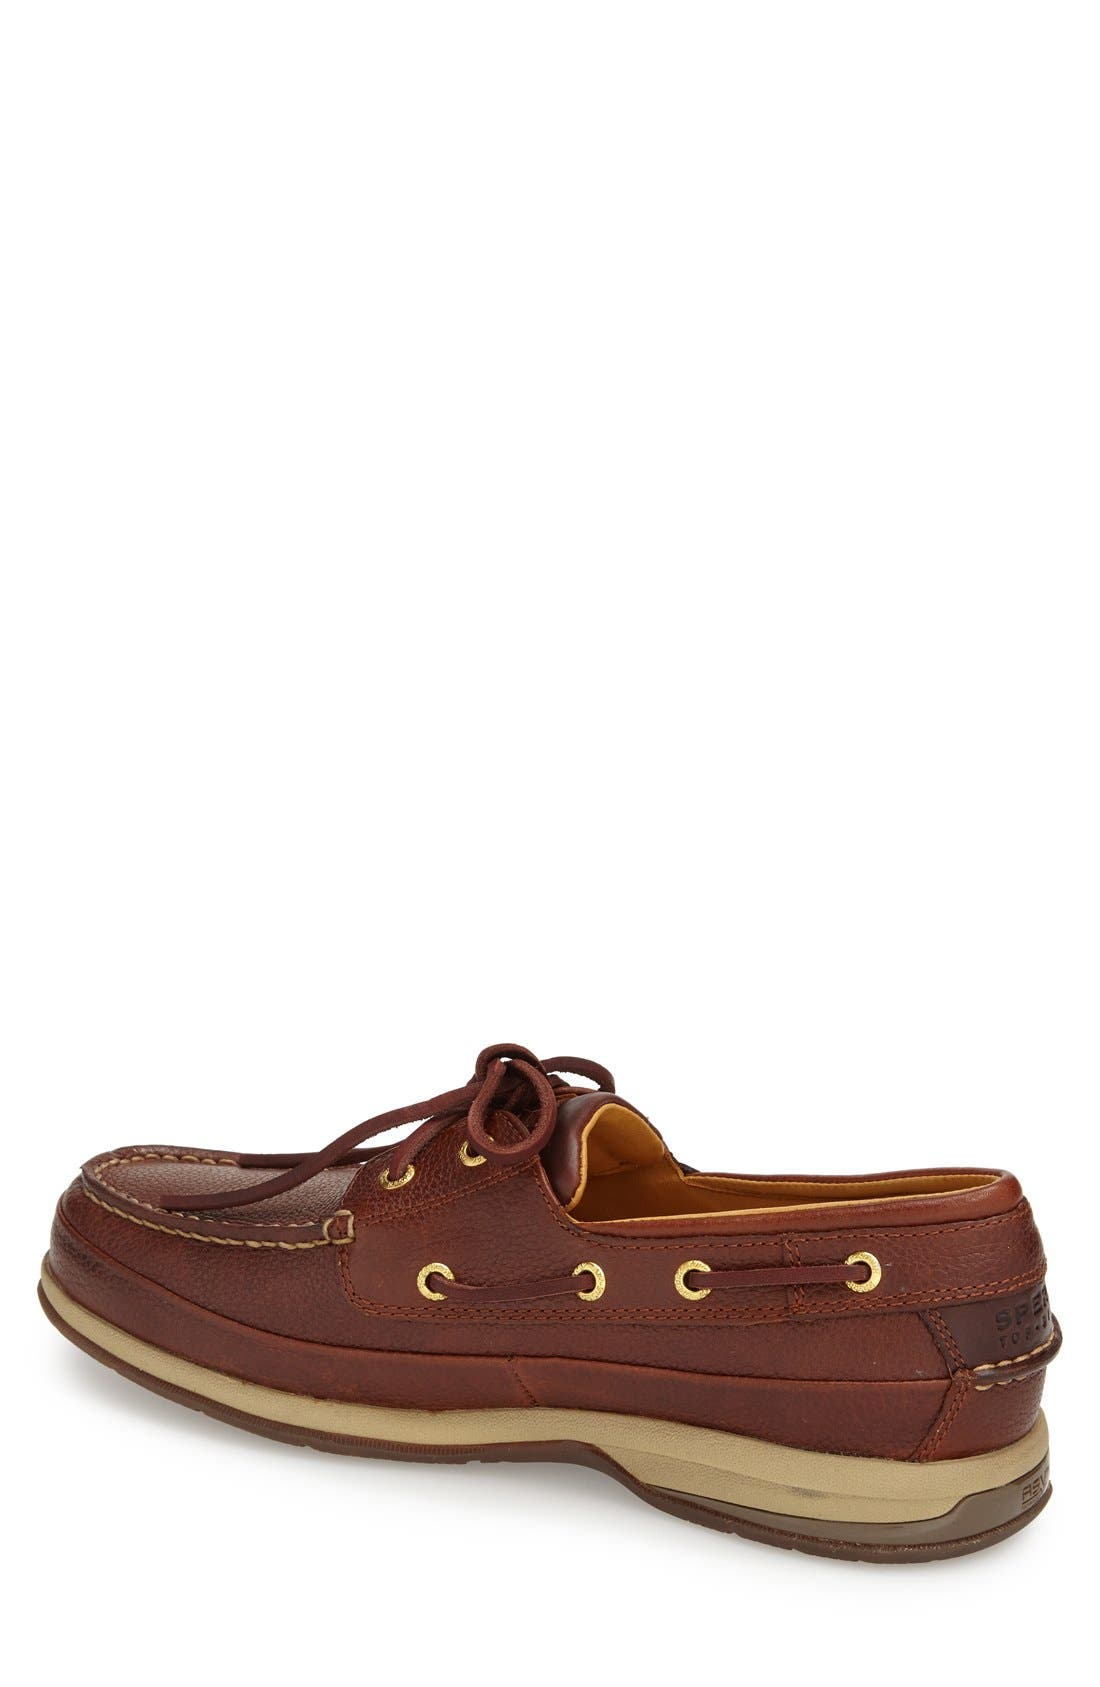 SPERRY,                             'Gold Cup 2-Eye ASV' Boat Shoe,                             Alternate thumbnail 2, color,                             200